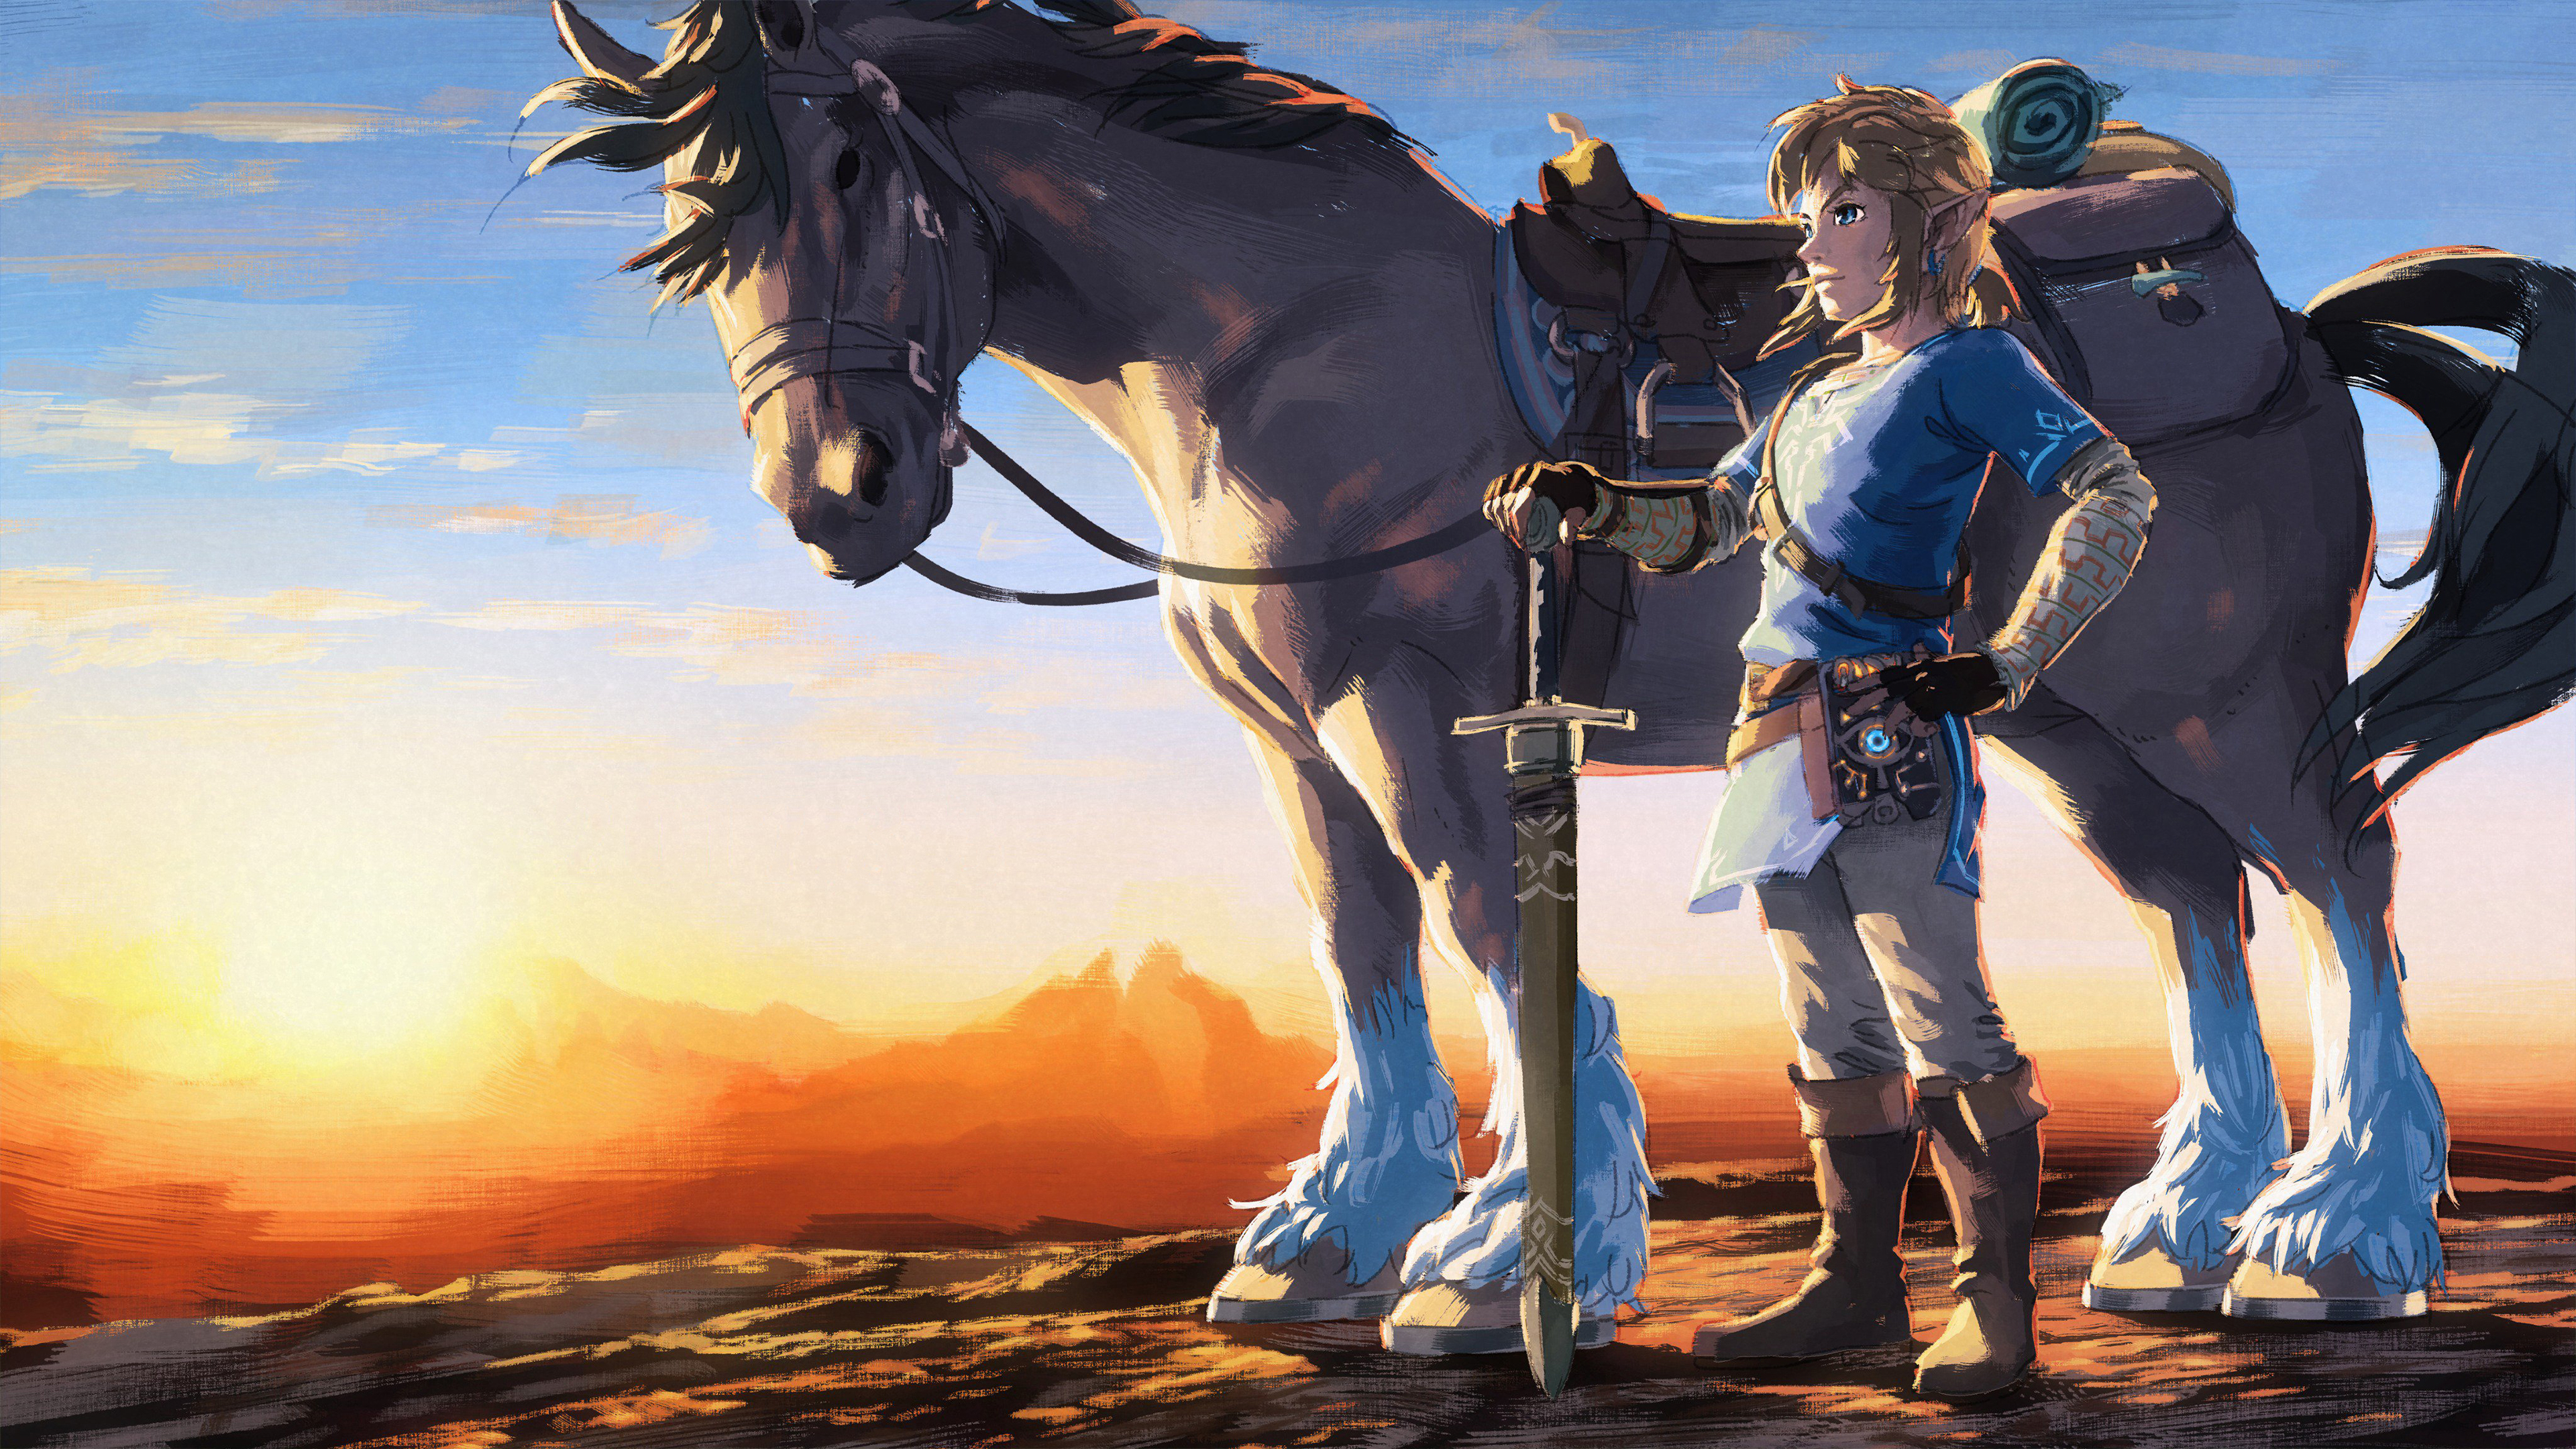 1920x1080 1 Year Anniversary The Legend Of Zelda Breath Of The